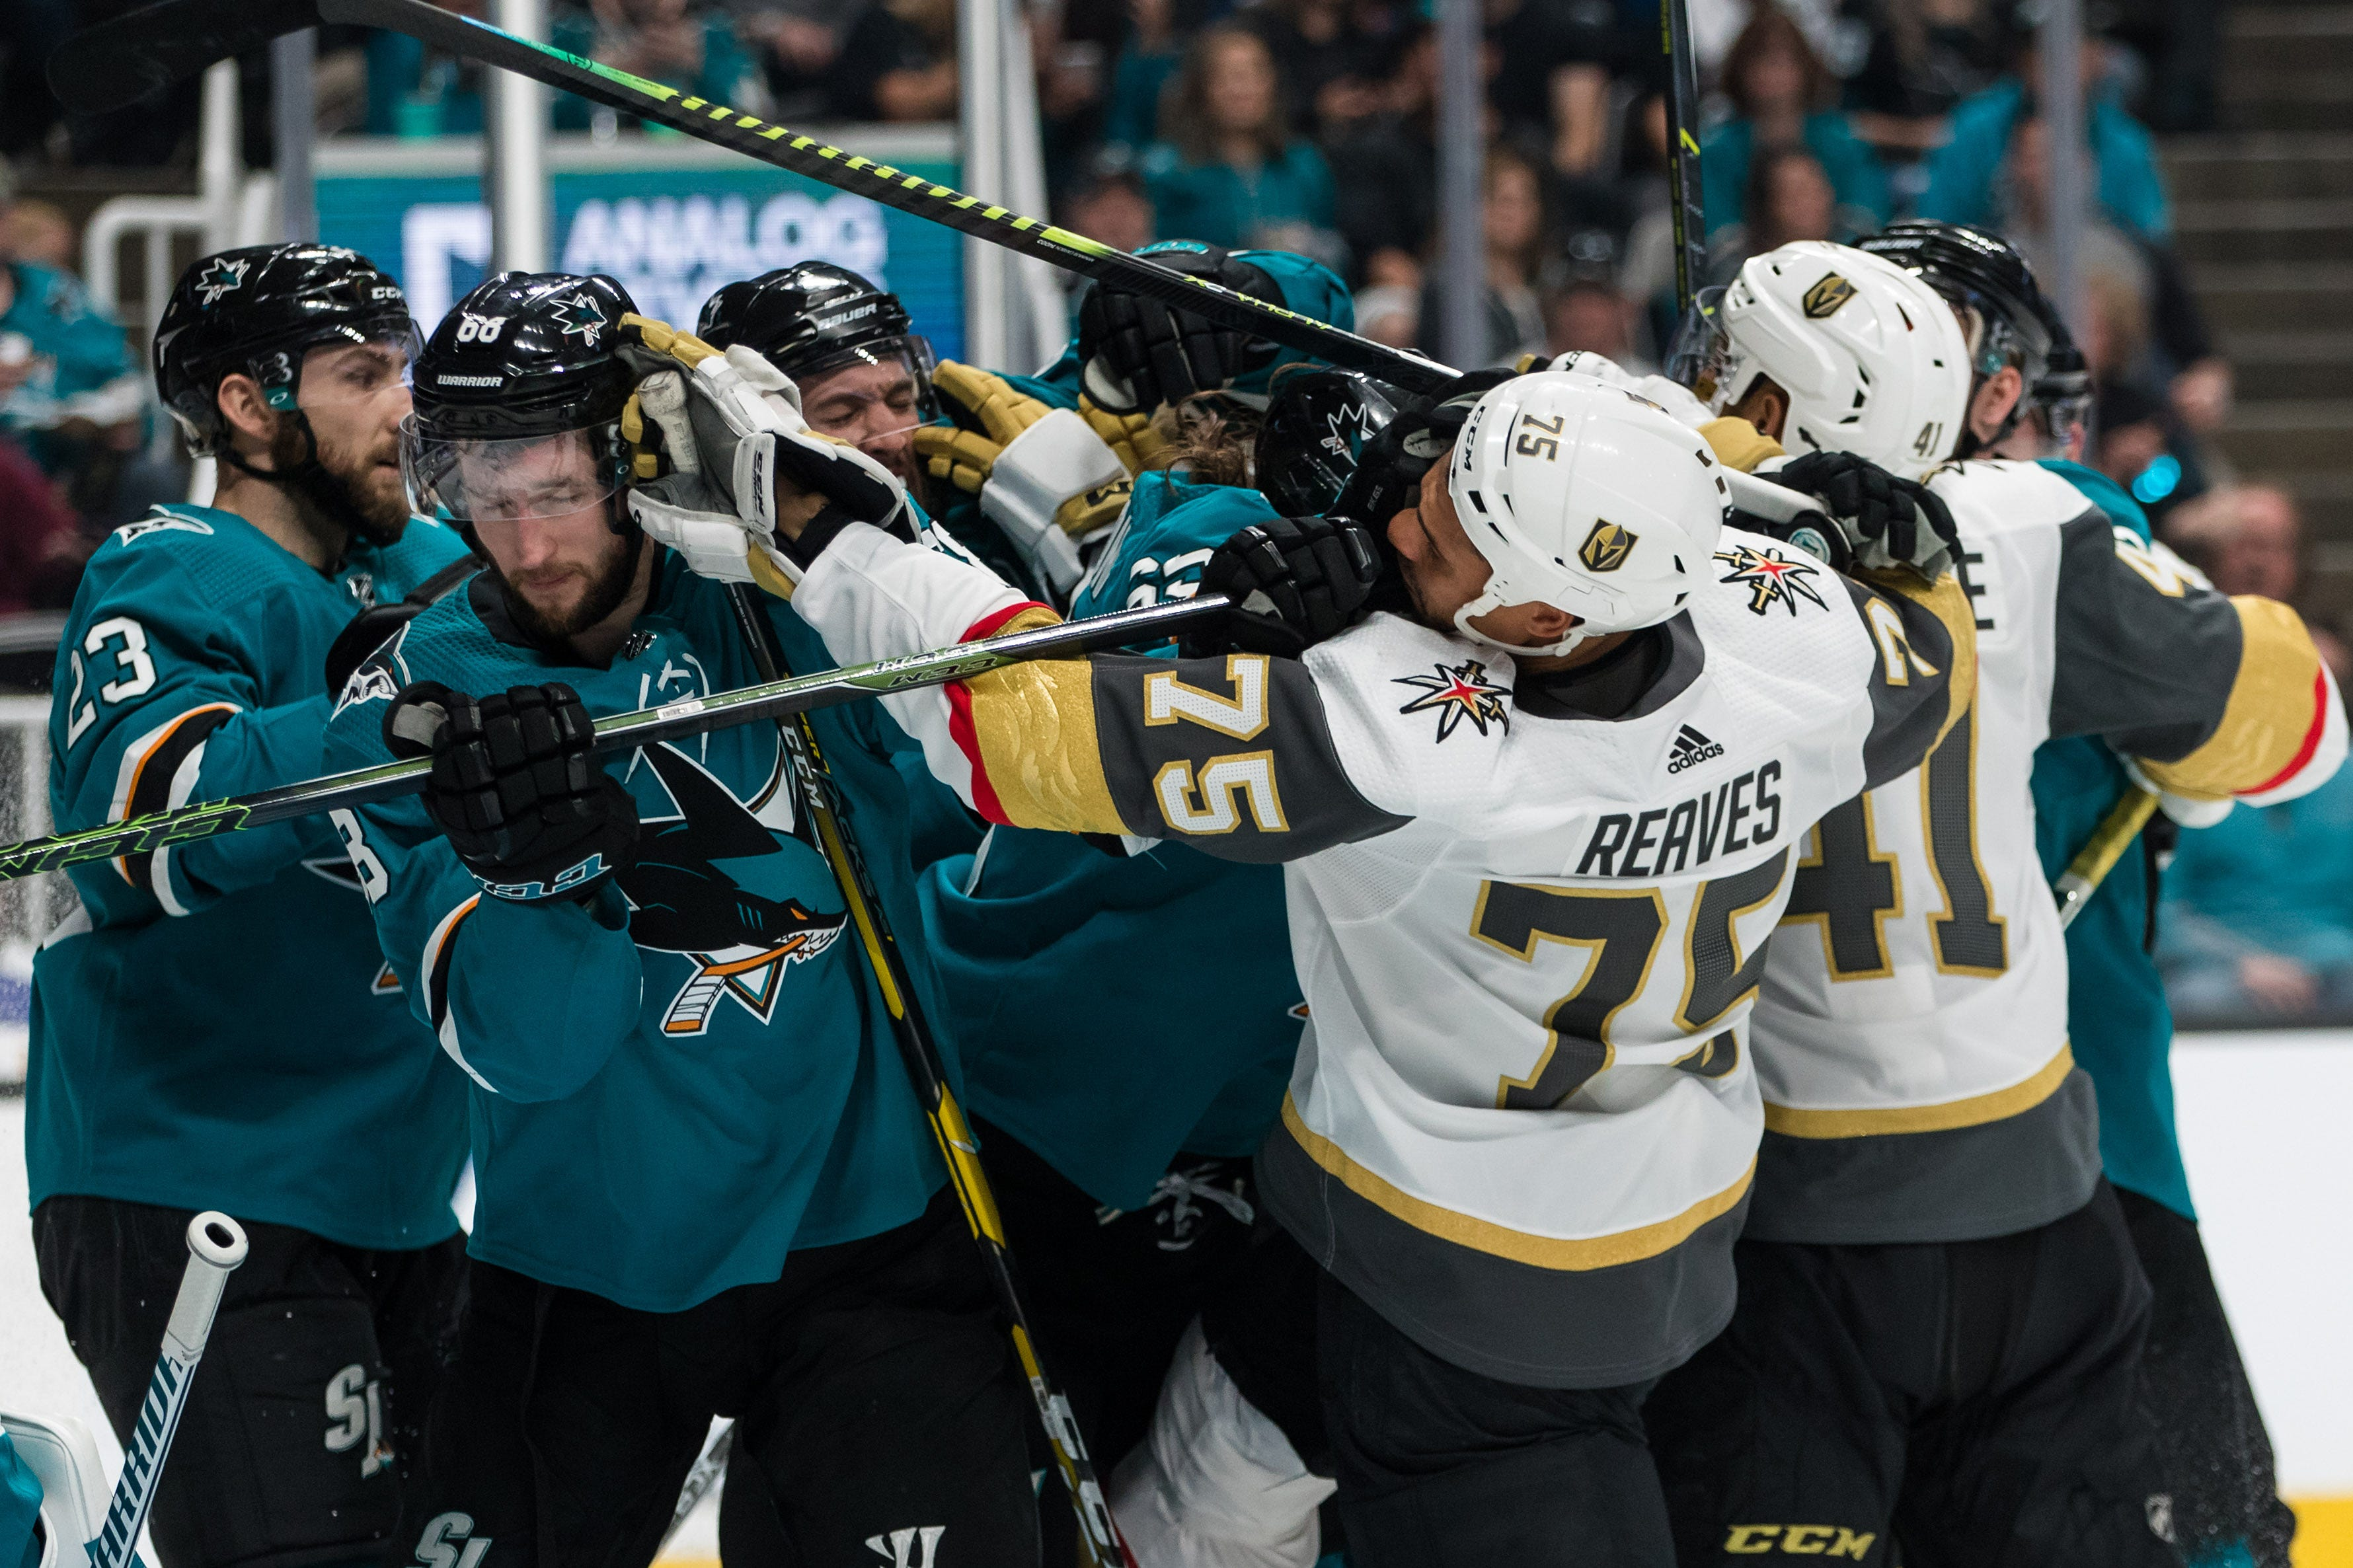 First round: San Jose Sharks players tussle with Vegas Golden Knights players in the second period of Game 5 at SAP Center at San Jose. The Sharks won the game, 5-2.